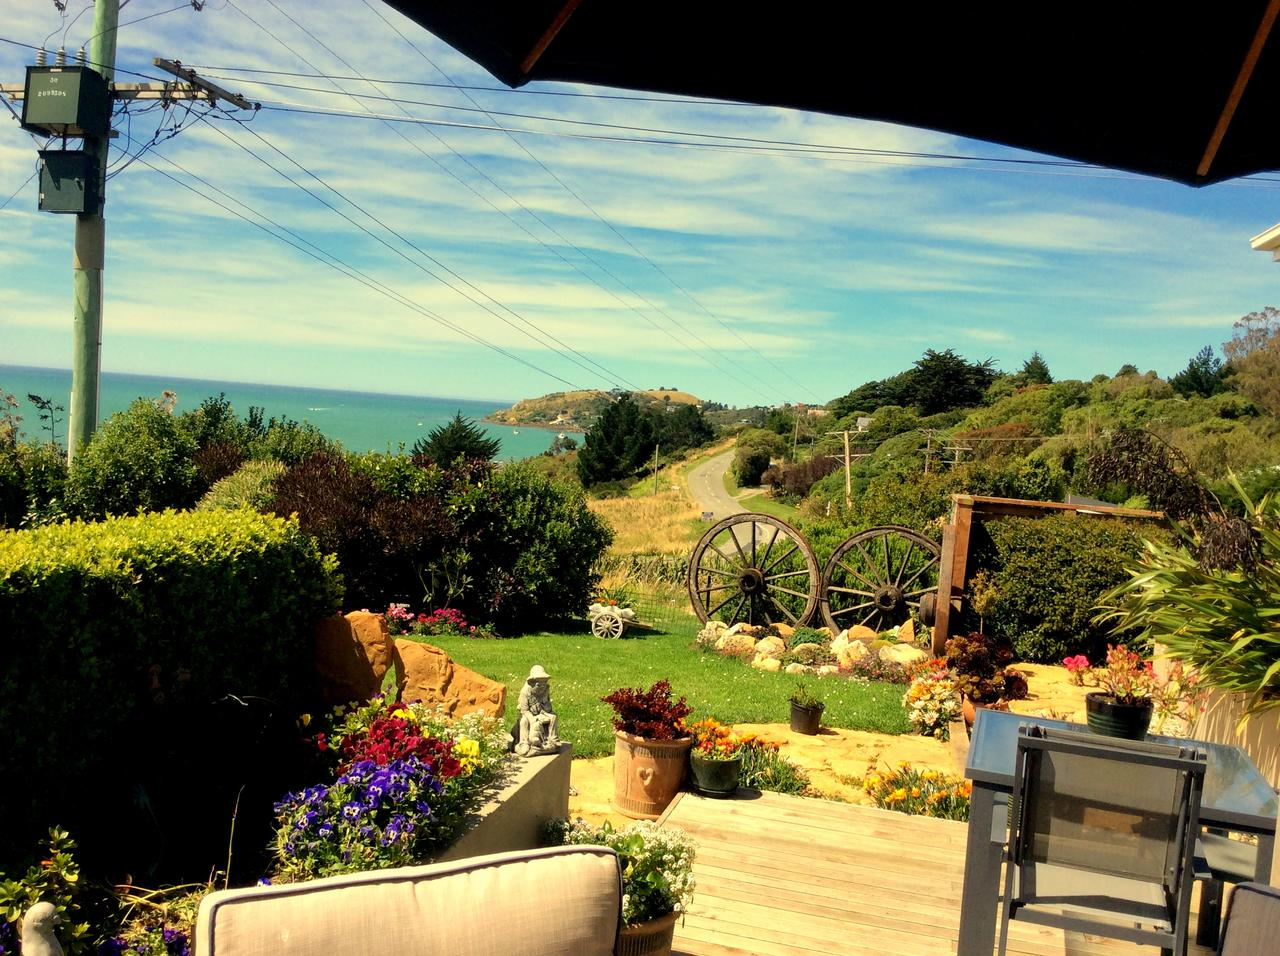 Noah 39 s boutique accommodation moeraki photos for Boutique accommodation